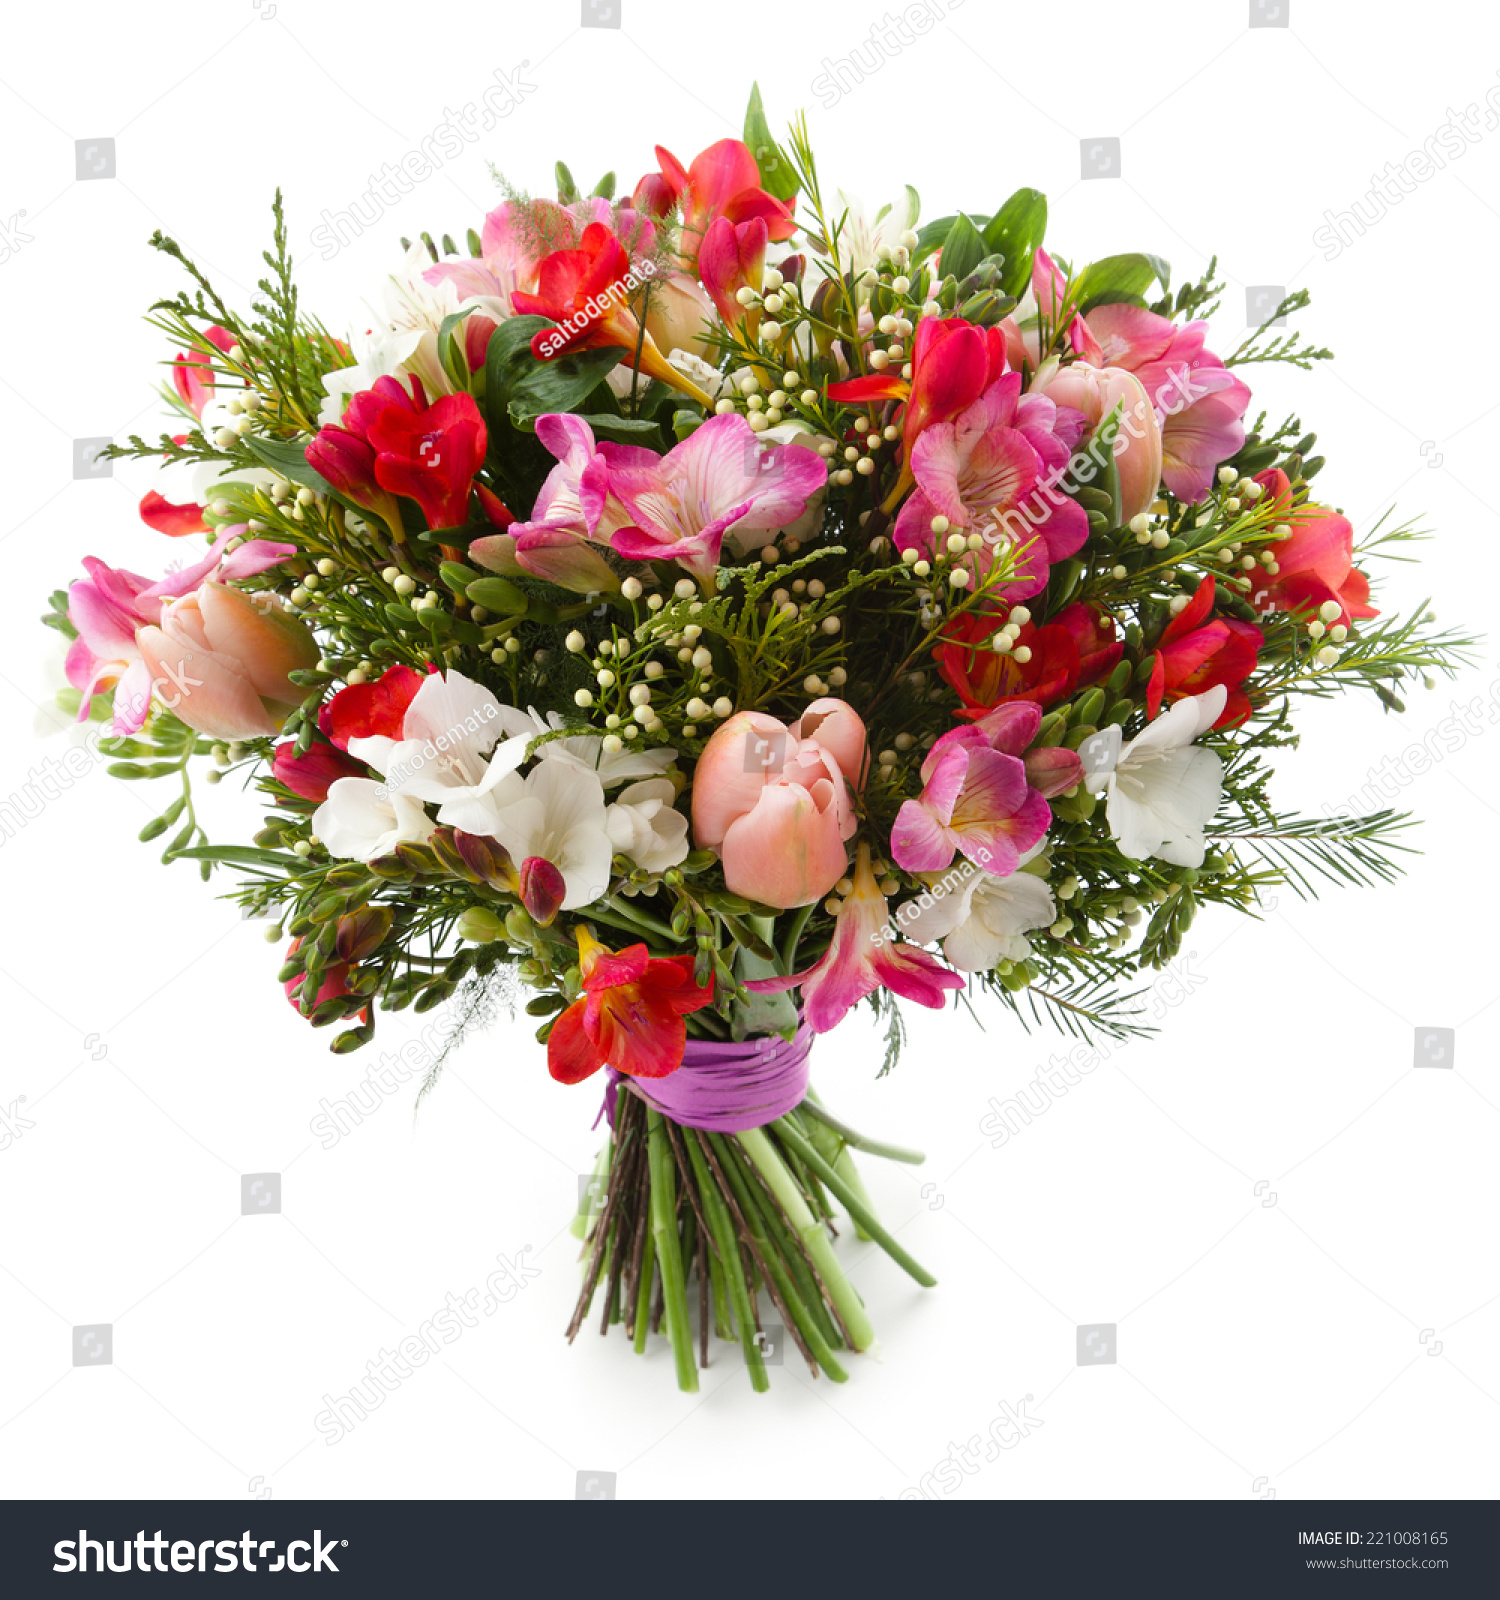 Freesia flower bouquet image collections flower wallpaper hd freesia flowers bouquet isolated on white stock photo royalty free freesia flowers bouquet isolated on white izmirmasajfo